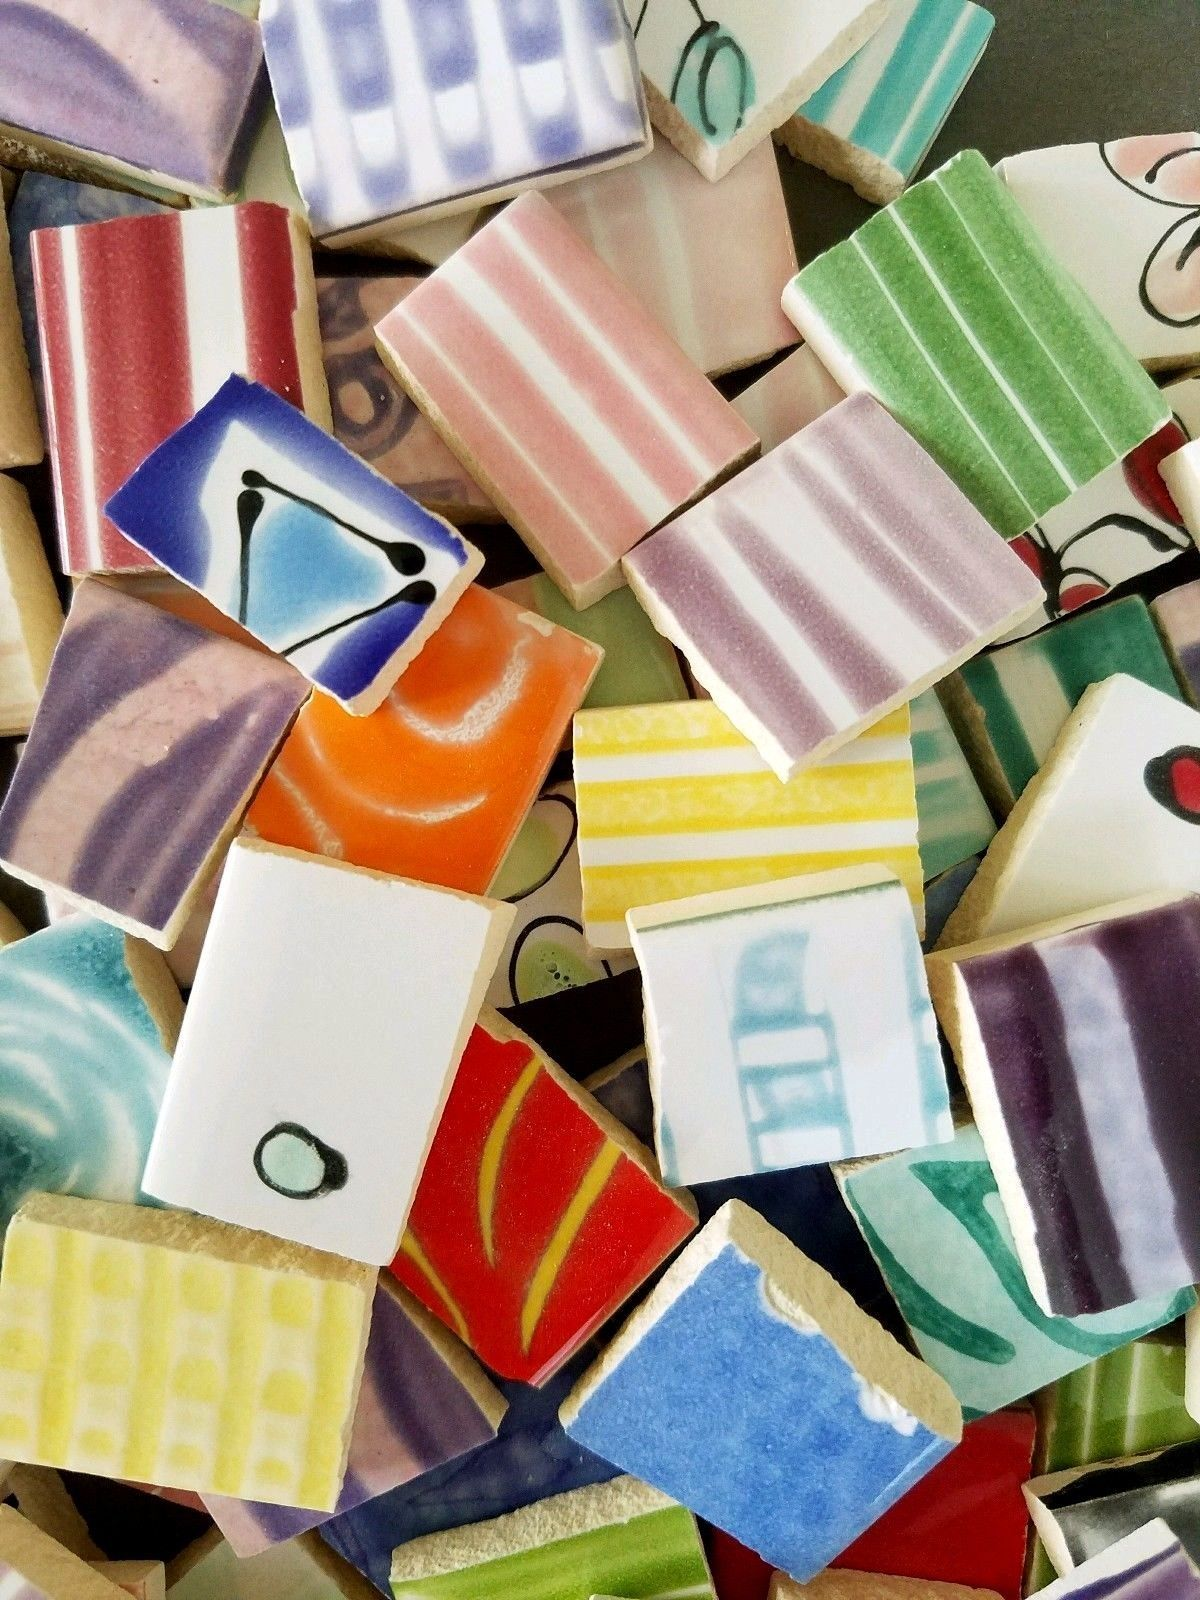 215 Handmade Handpainted Mosaic Tiles Funky Mixed Patterns And Colors 1